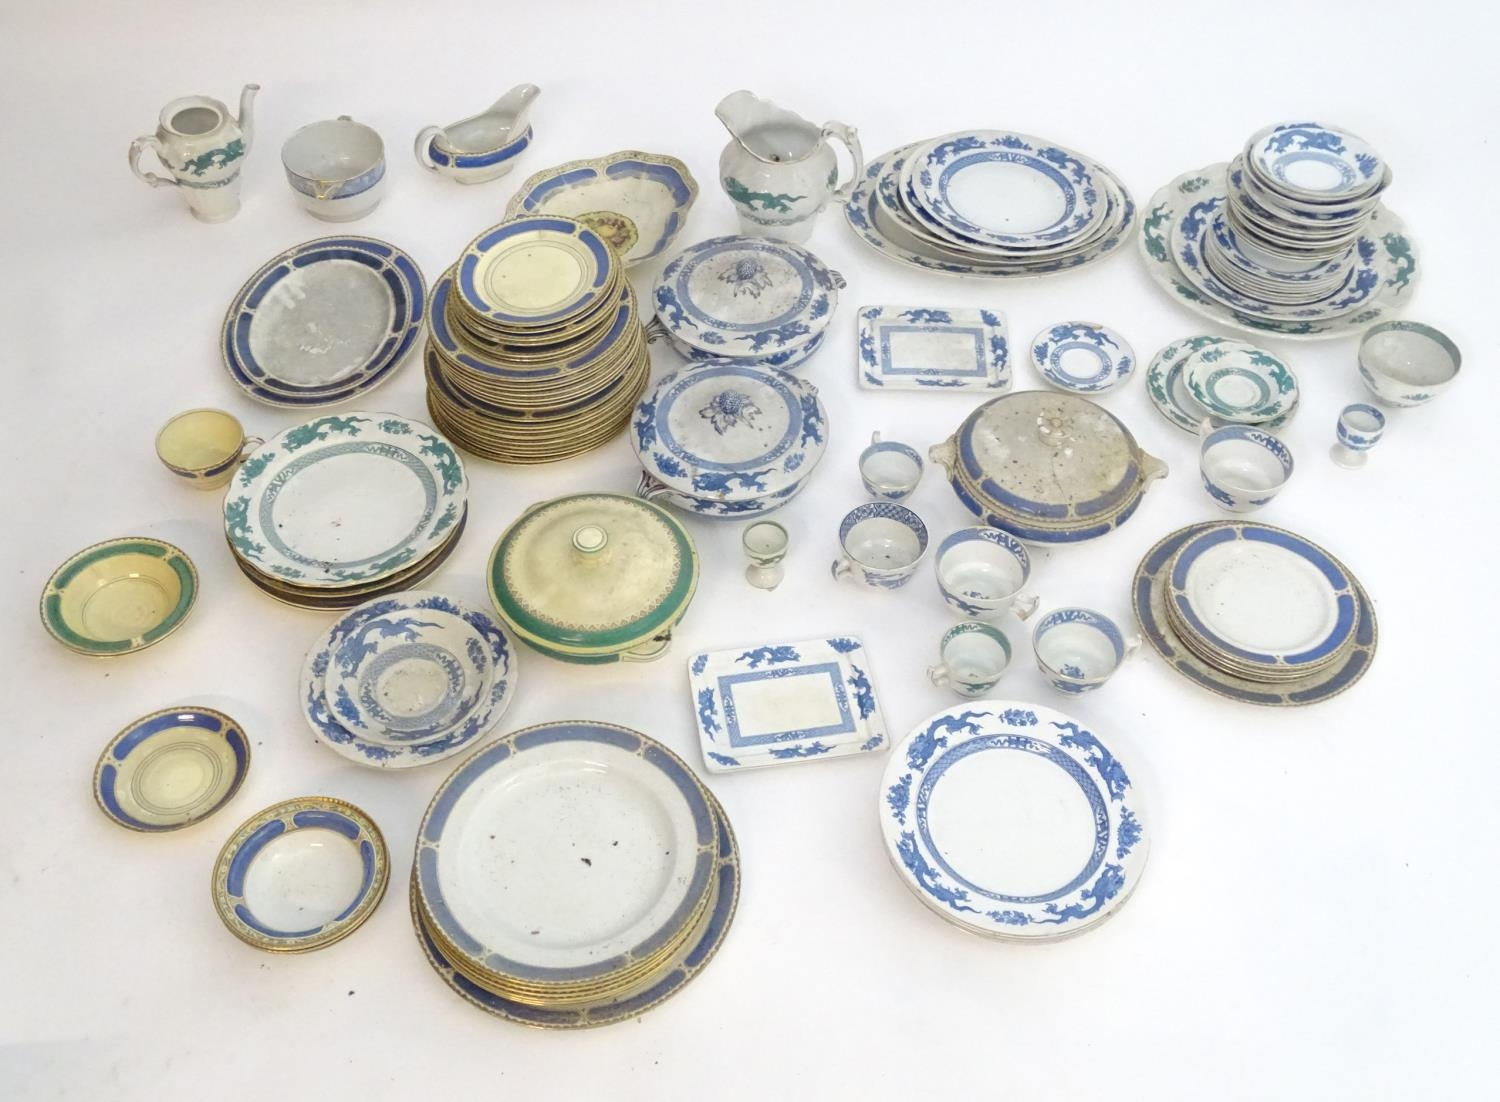 A large quantity of assorted Booths china to include teapots, plates, tureens, jugs, serving dishes,